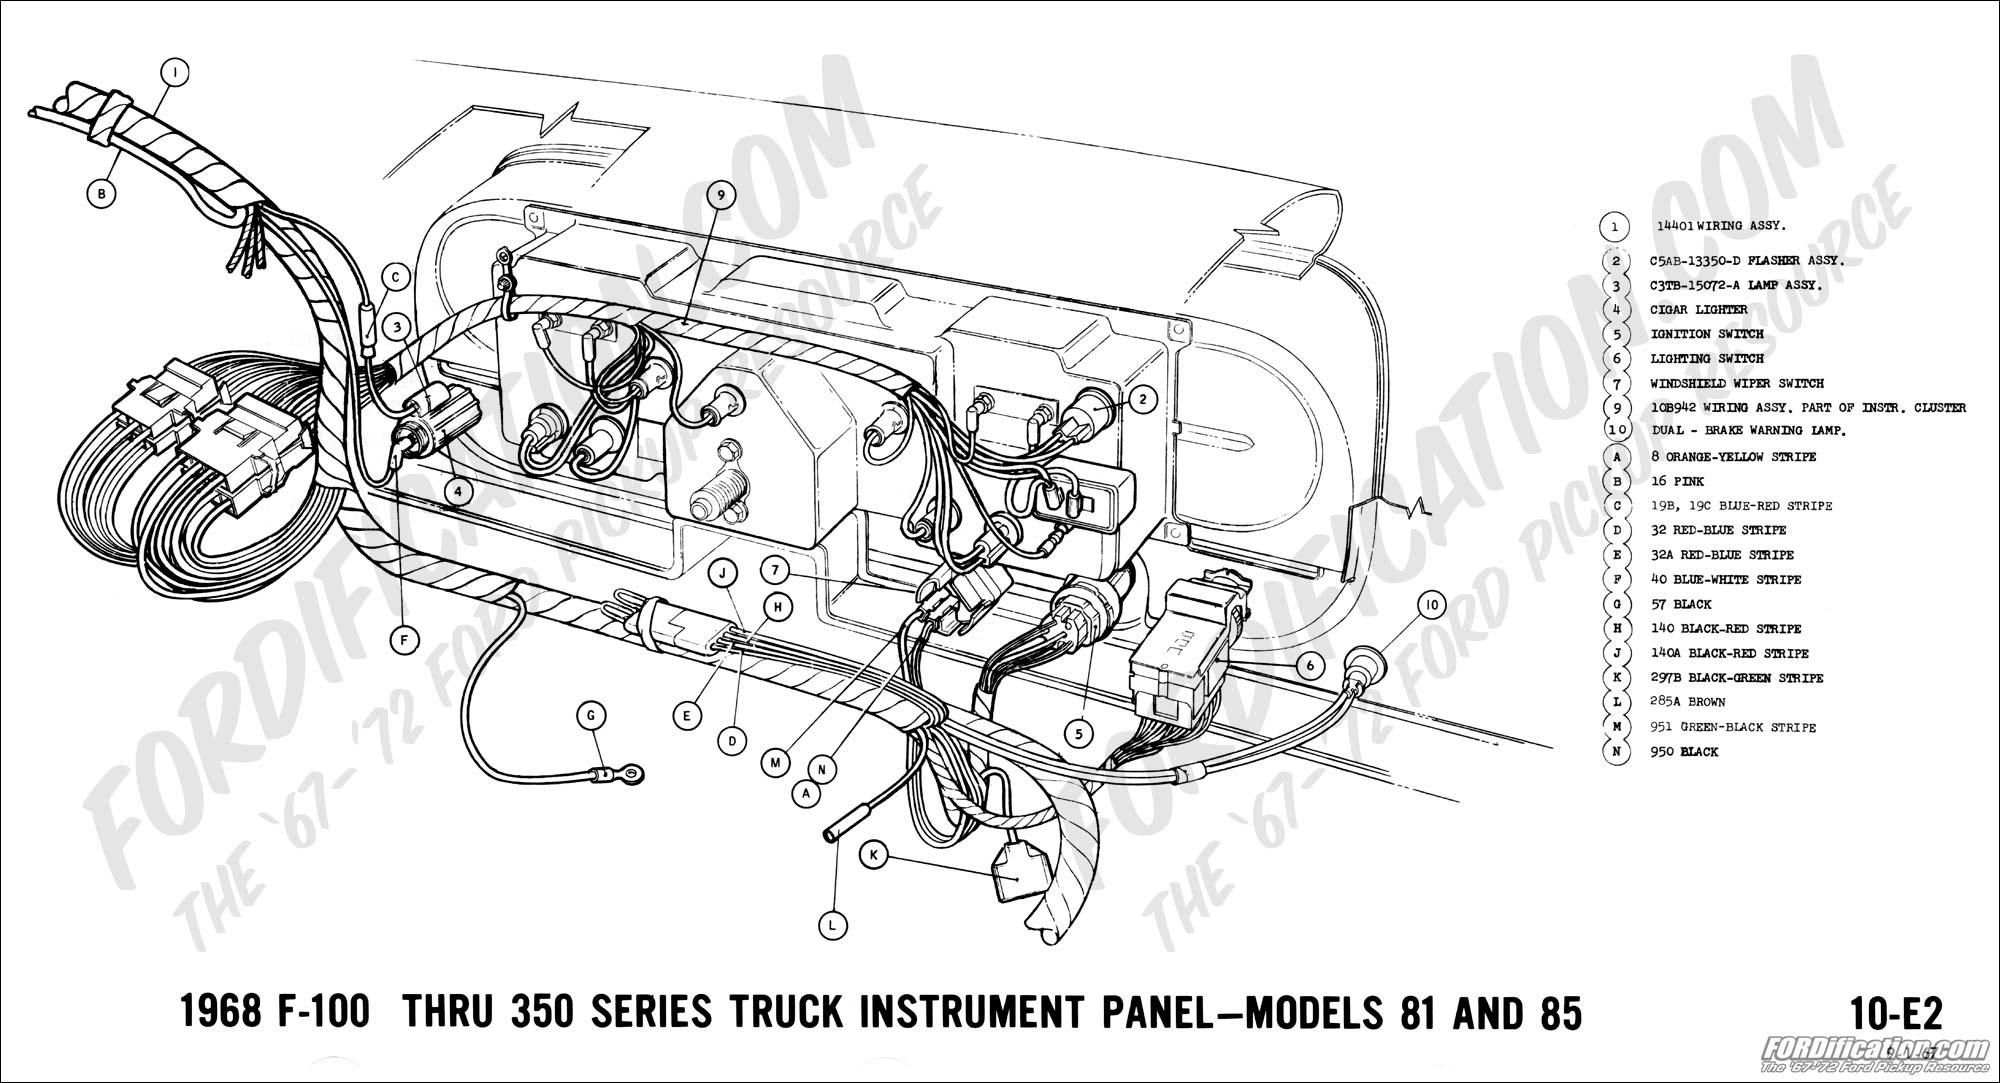 Ford Truck Technical Drawings And Schematics Section H Wiring Light Switch Schematic For 1968 F 100 Thru 350 Instrument Panel